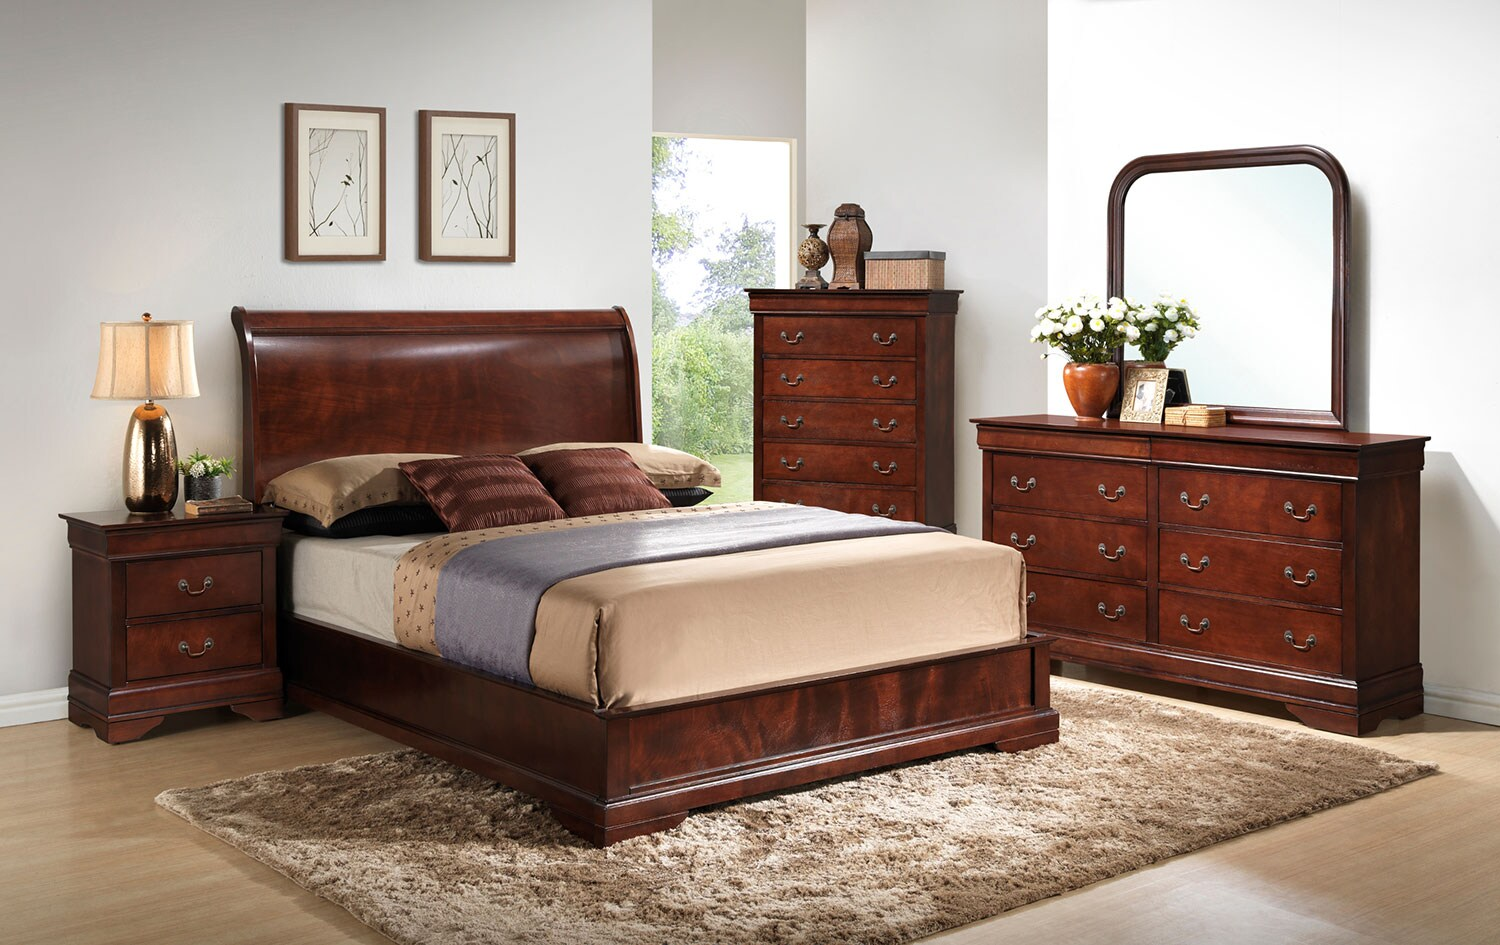 Claire 4-Piece King Bedroom Set - Brown Cherry